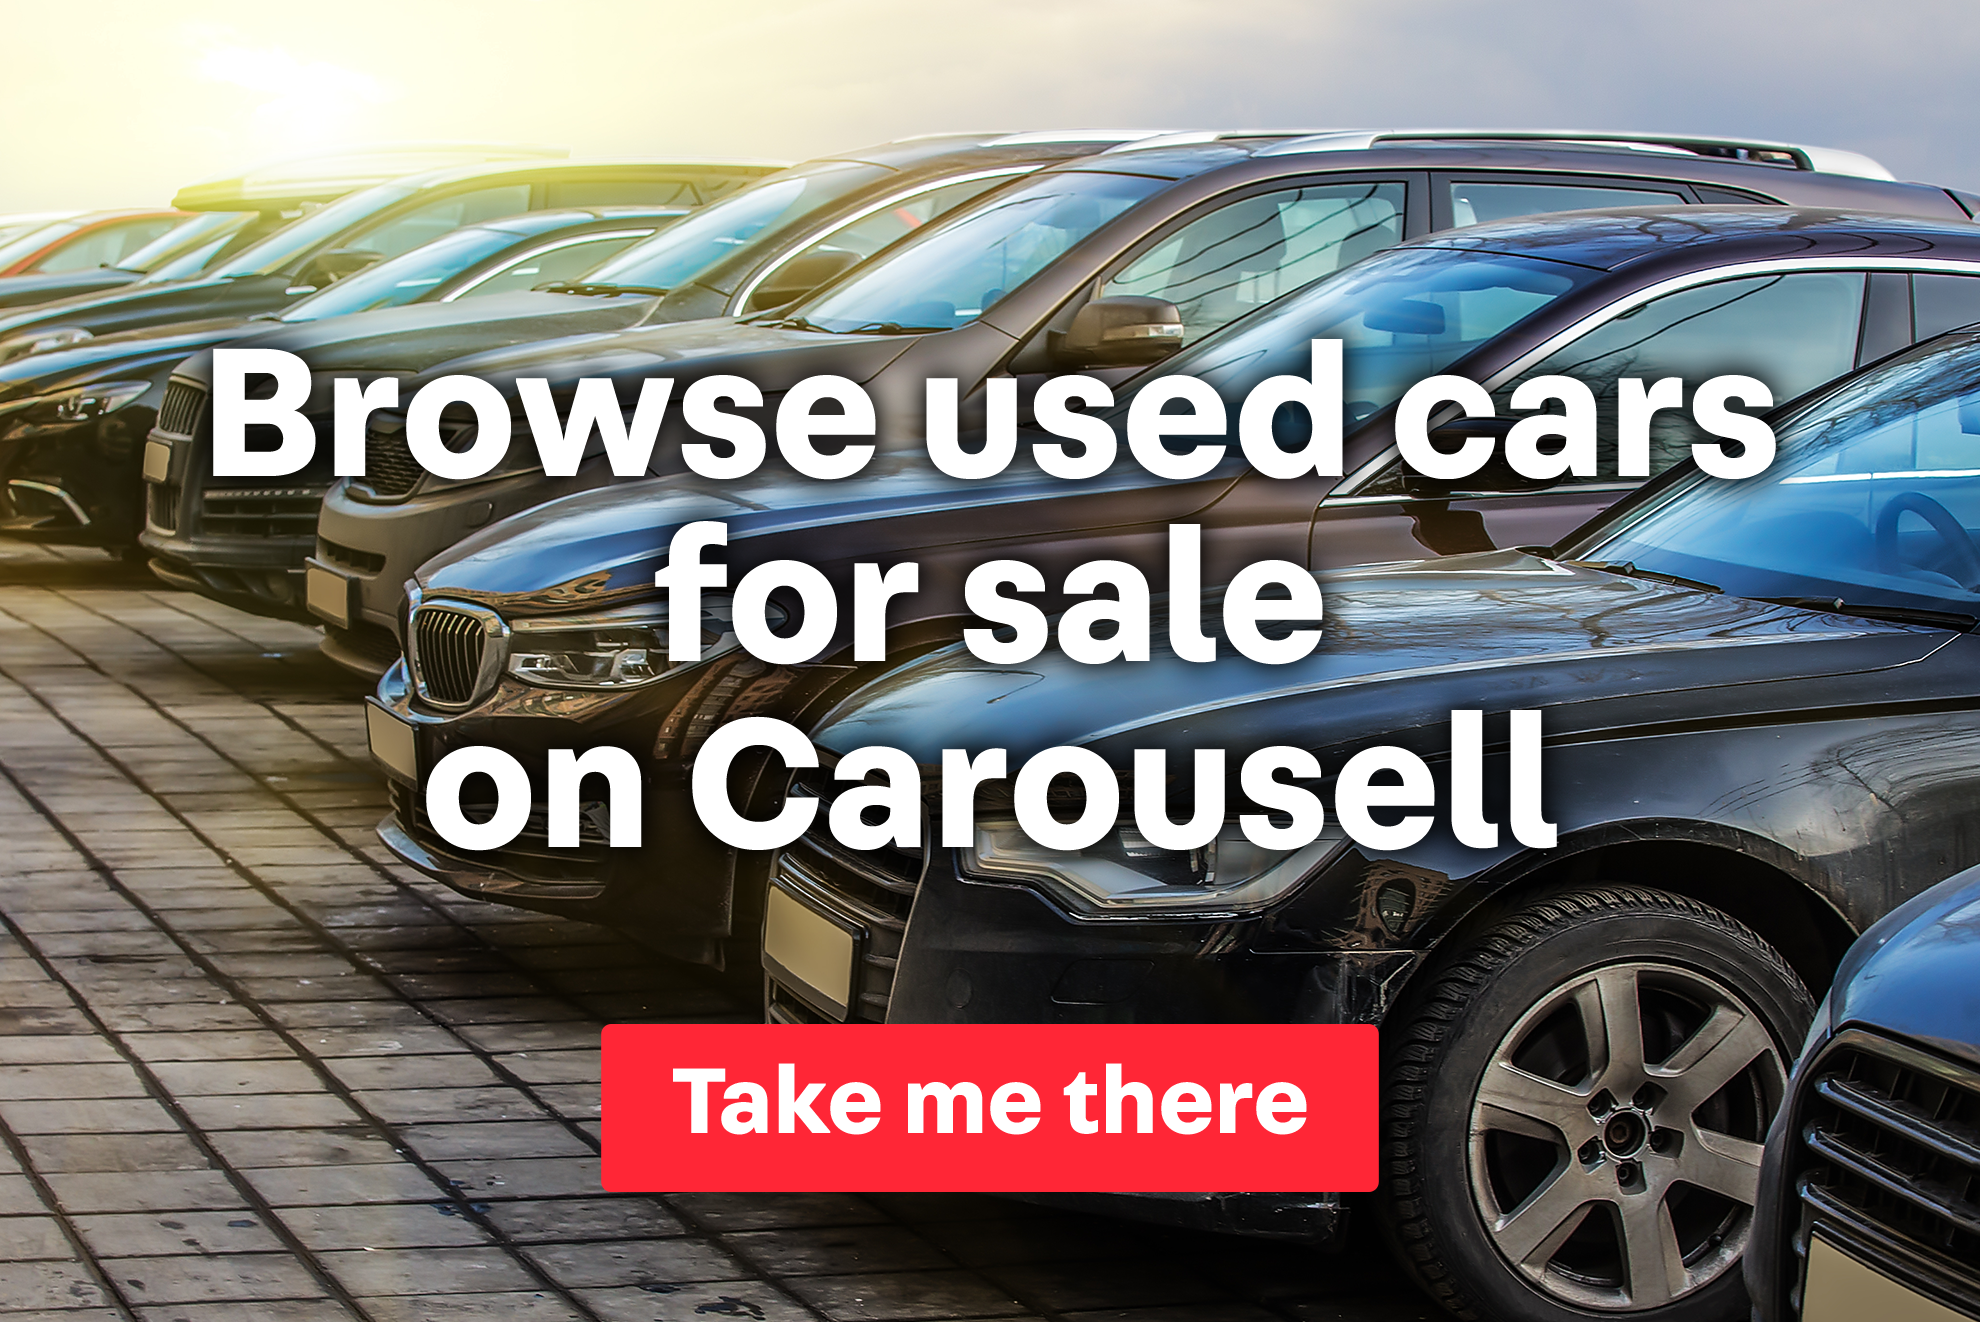 Find used cars for sale on Carousell